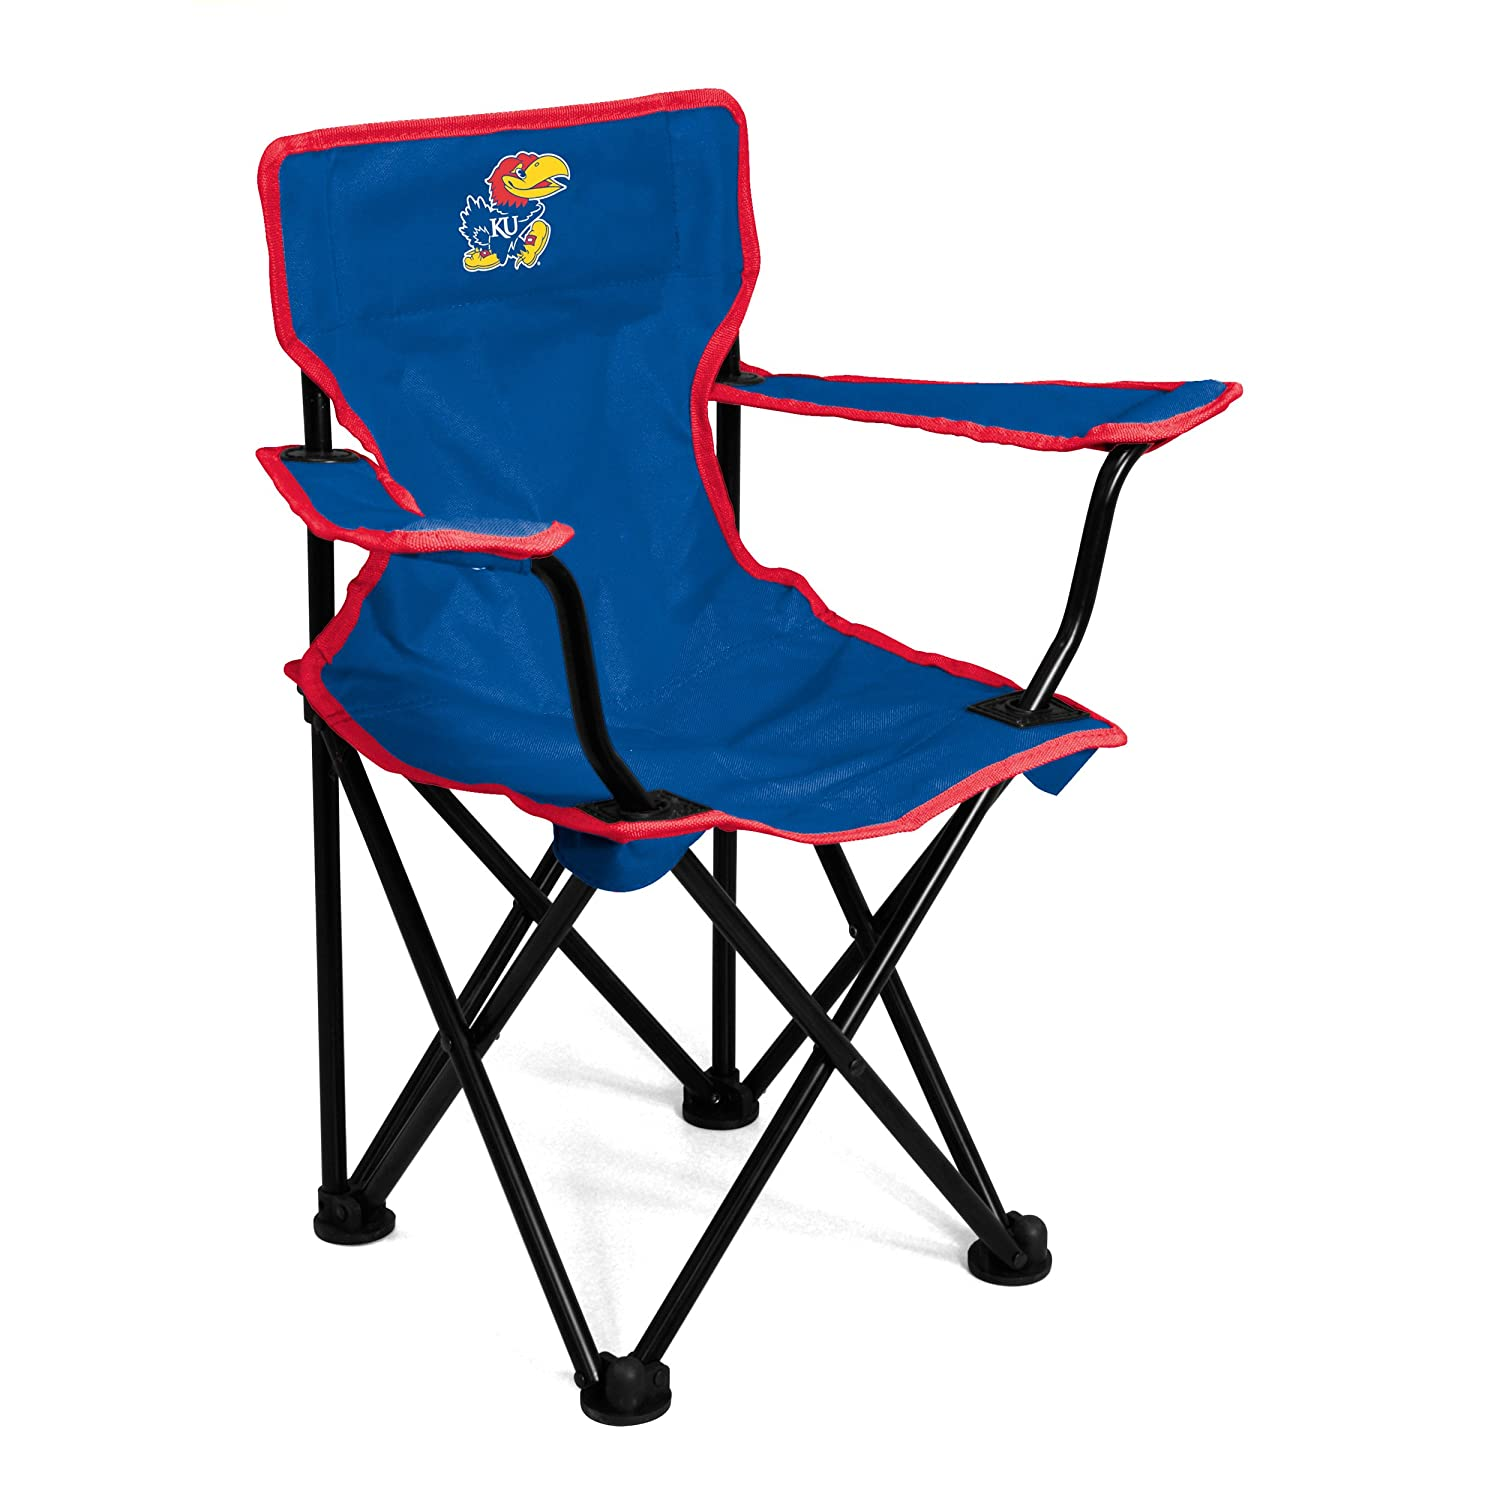 Outstanding Collegiate Folding Toddler Chair With Carry Bag Unemploymentrelief Wooden Chair Designs For Living Room Unemploymentrelieforg